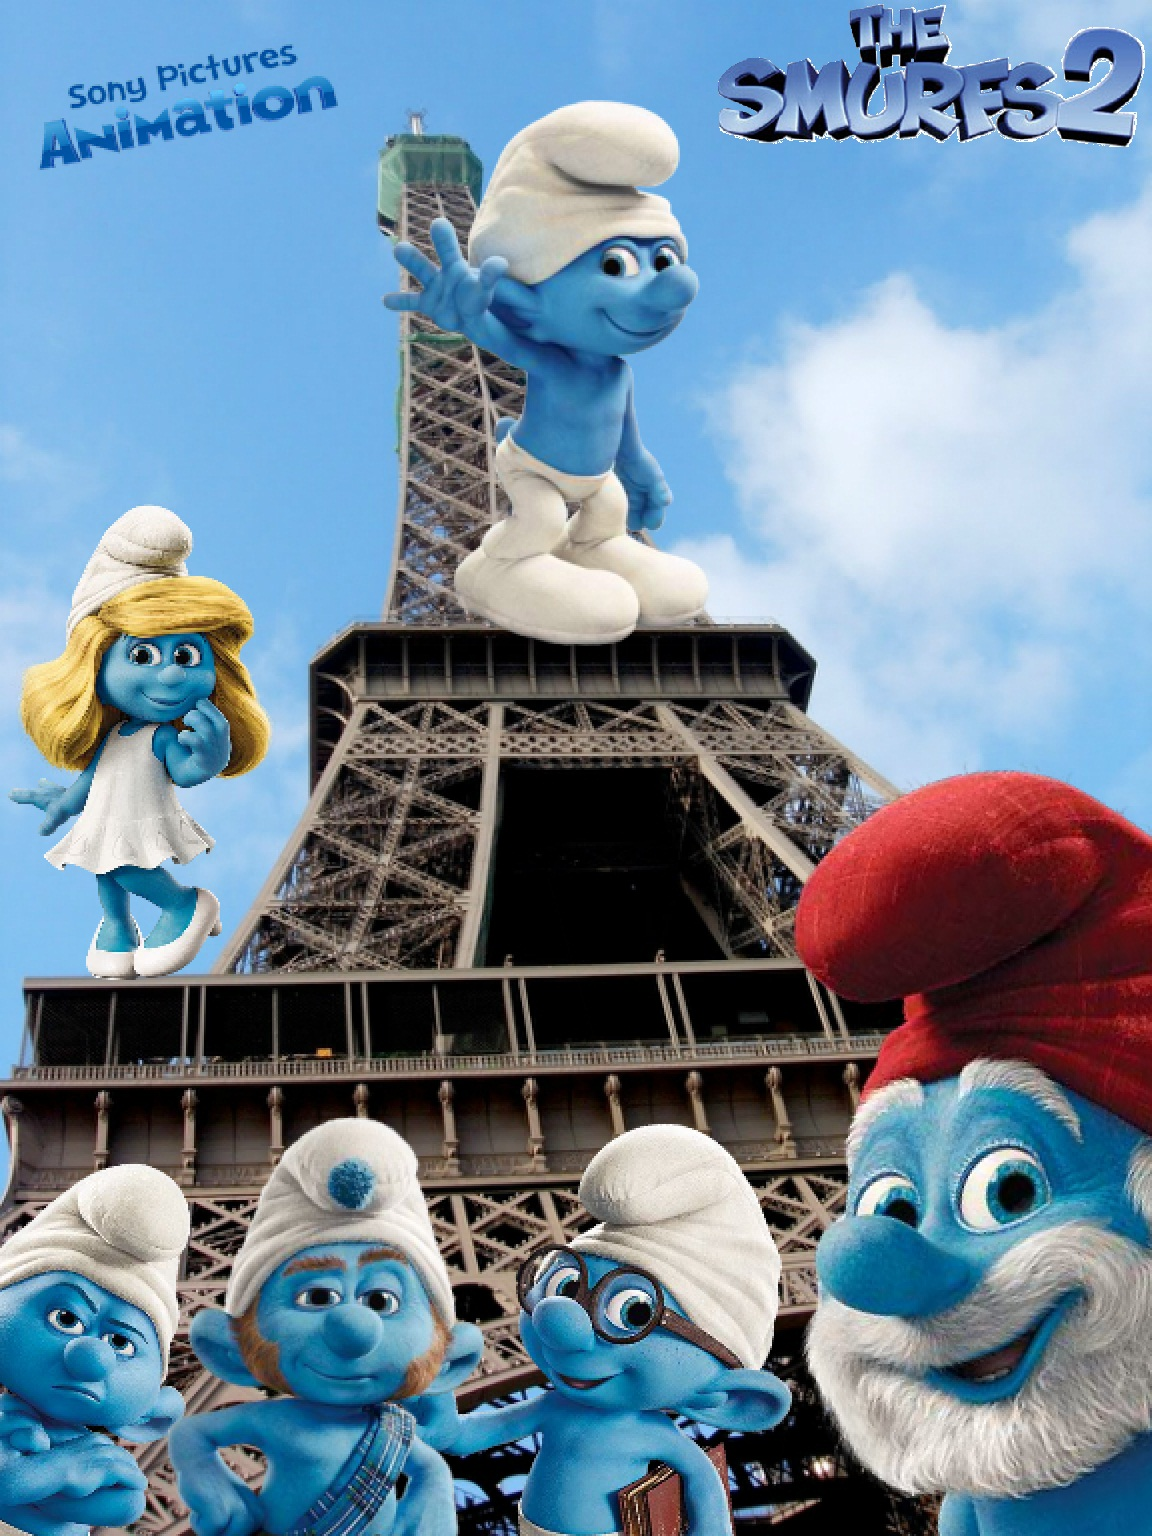 watch movies online megavideo: watch the smurfs 2 (2013) online